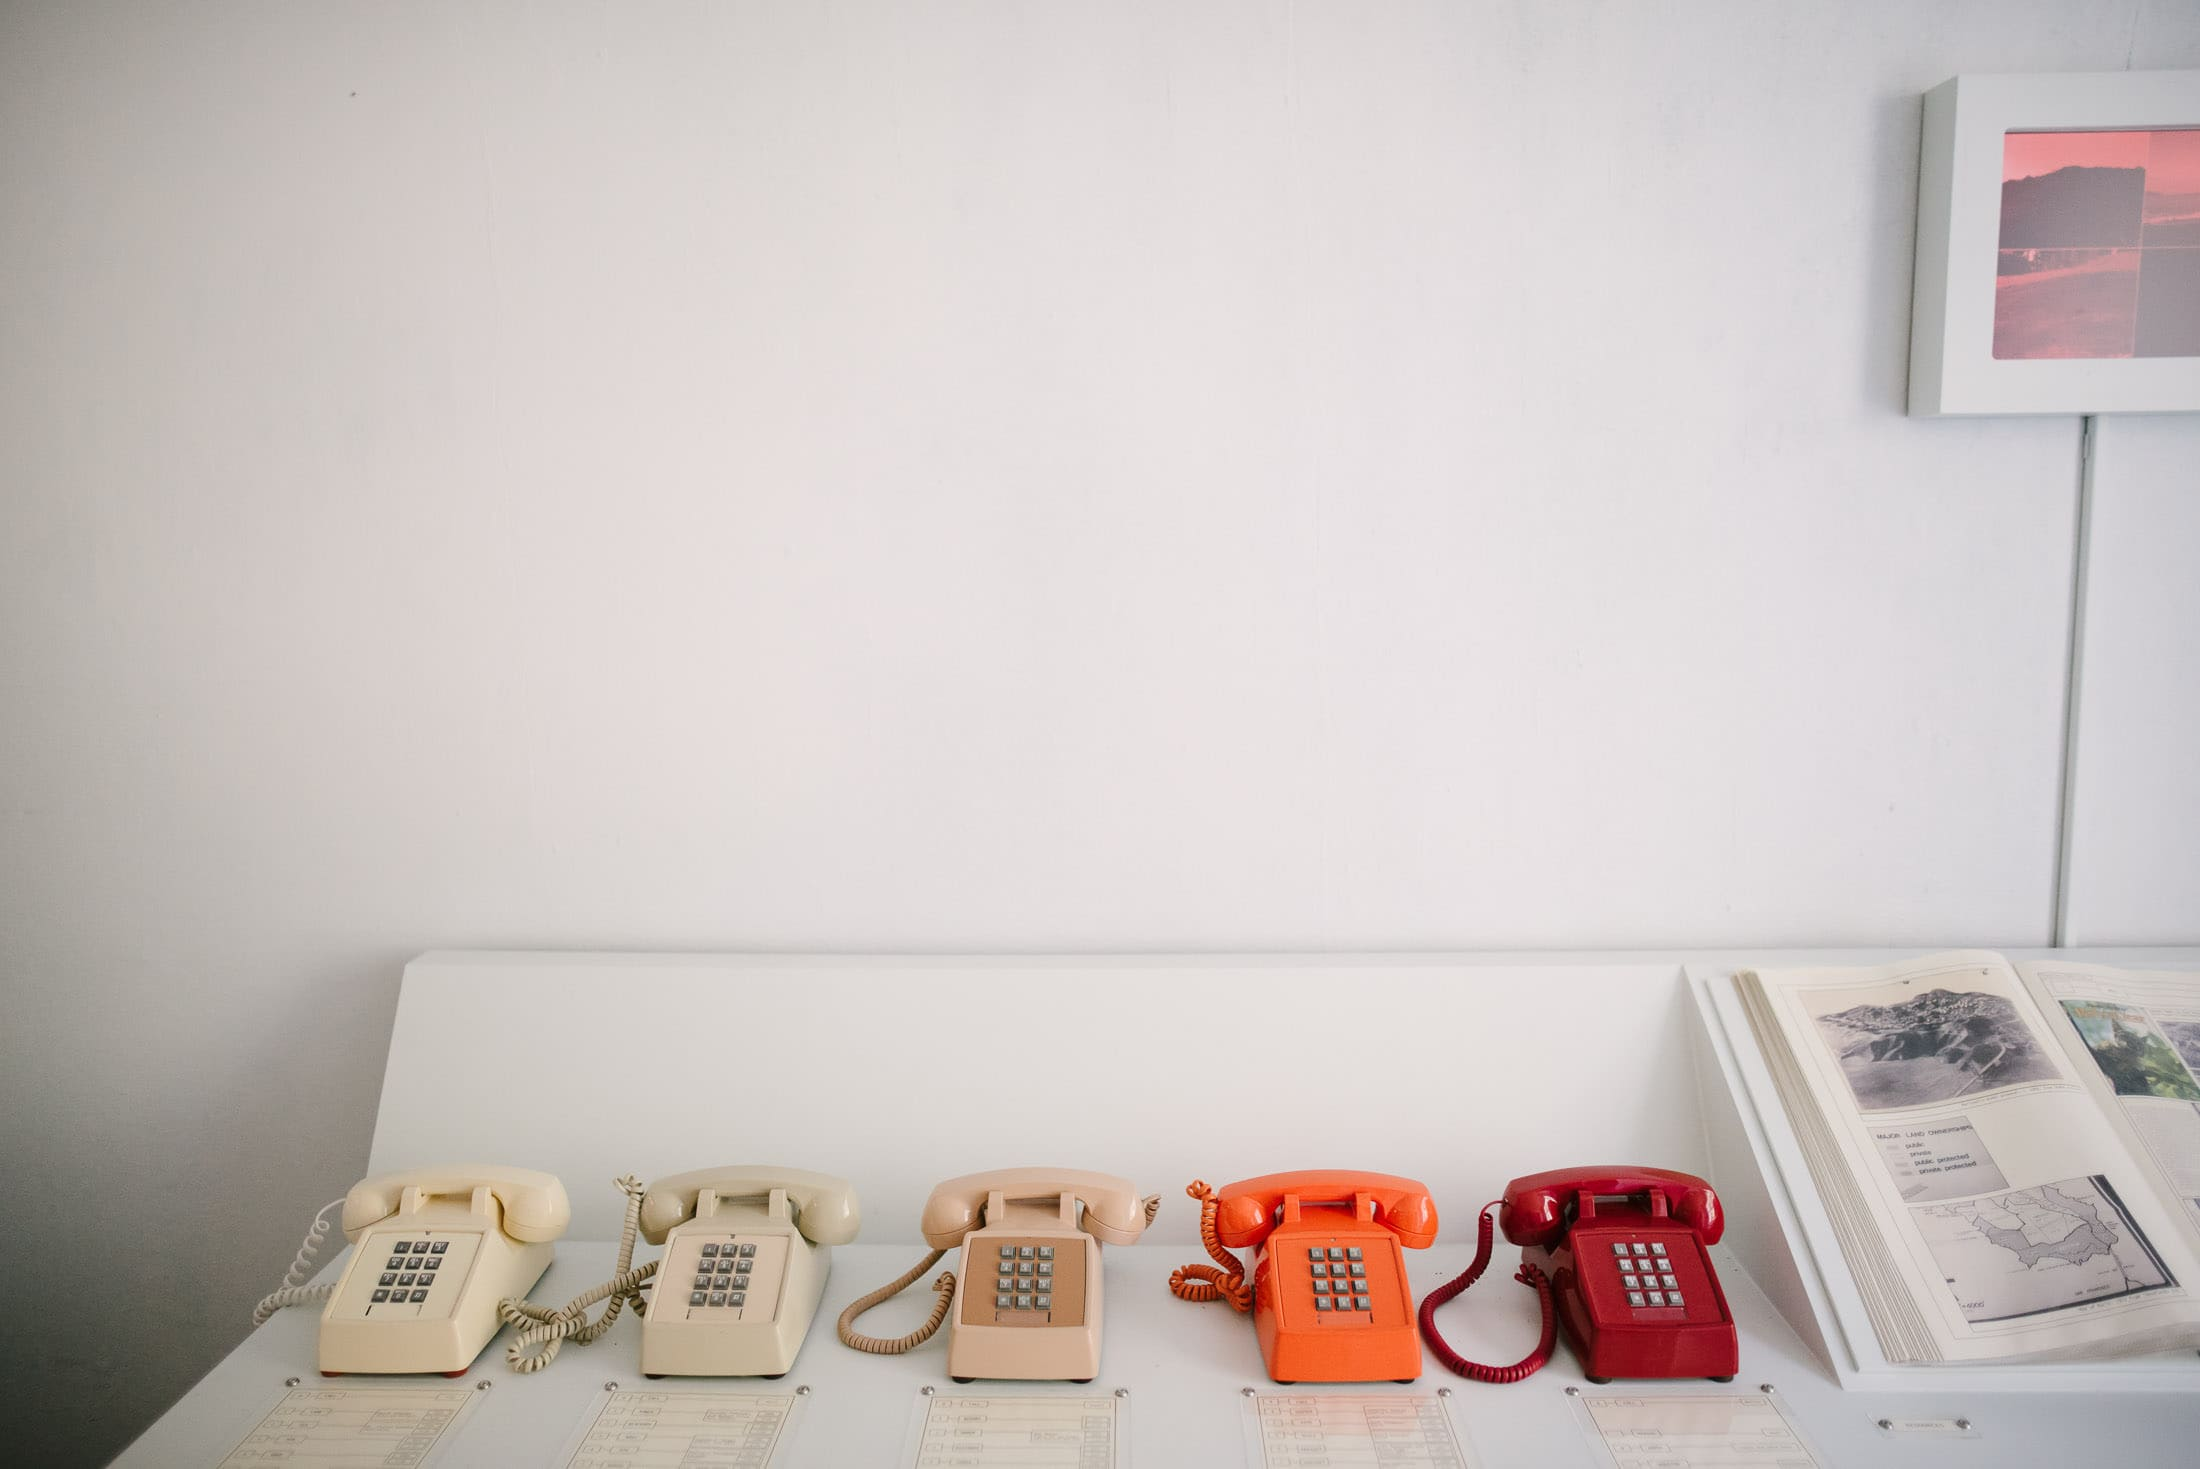 Headlands Center for the Arts Telephones